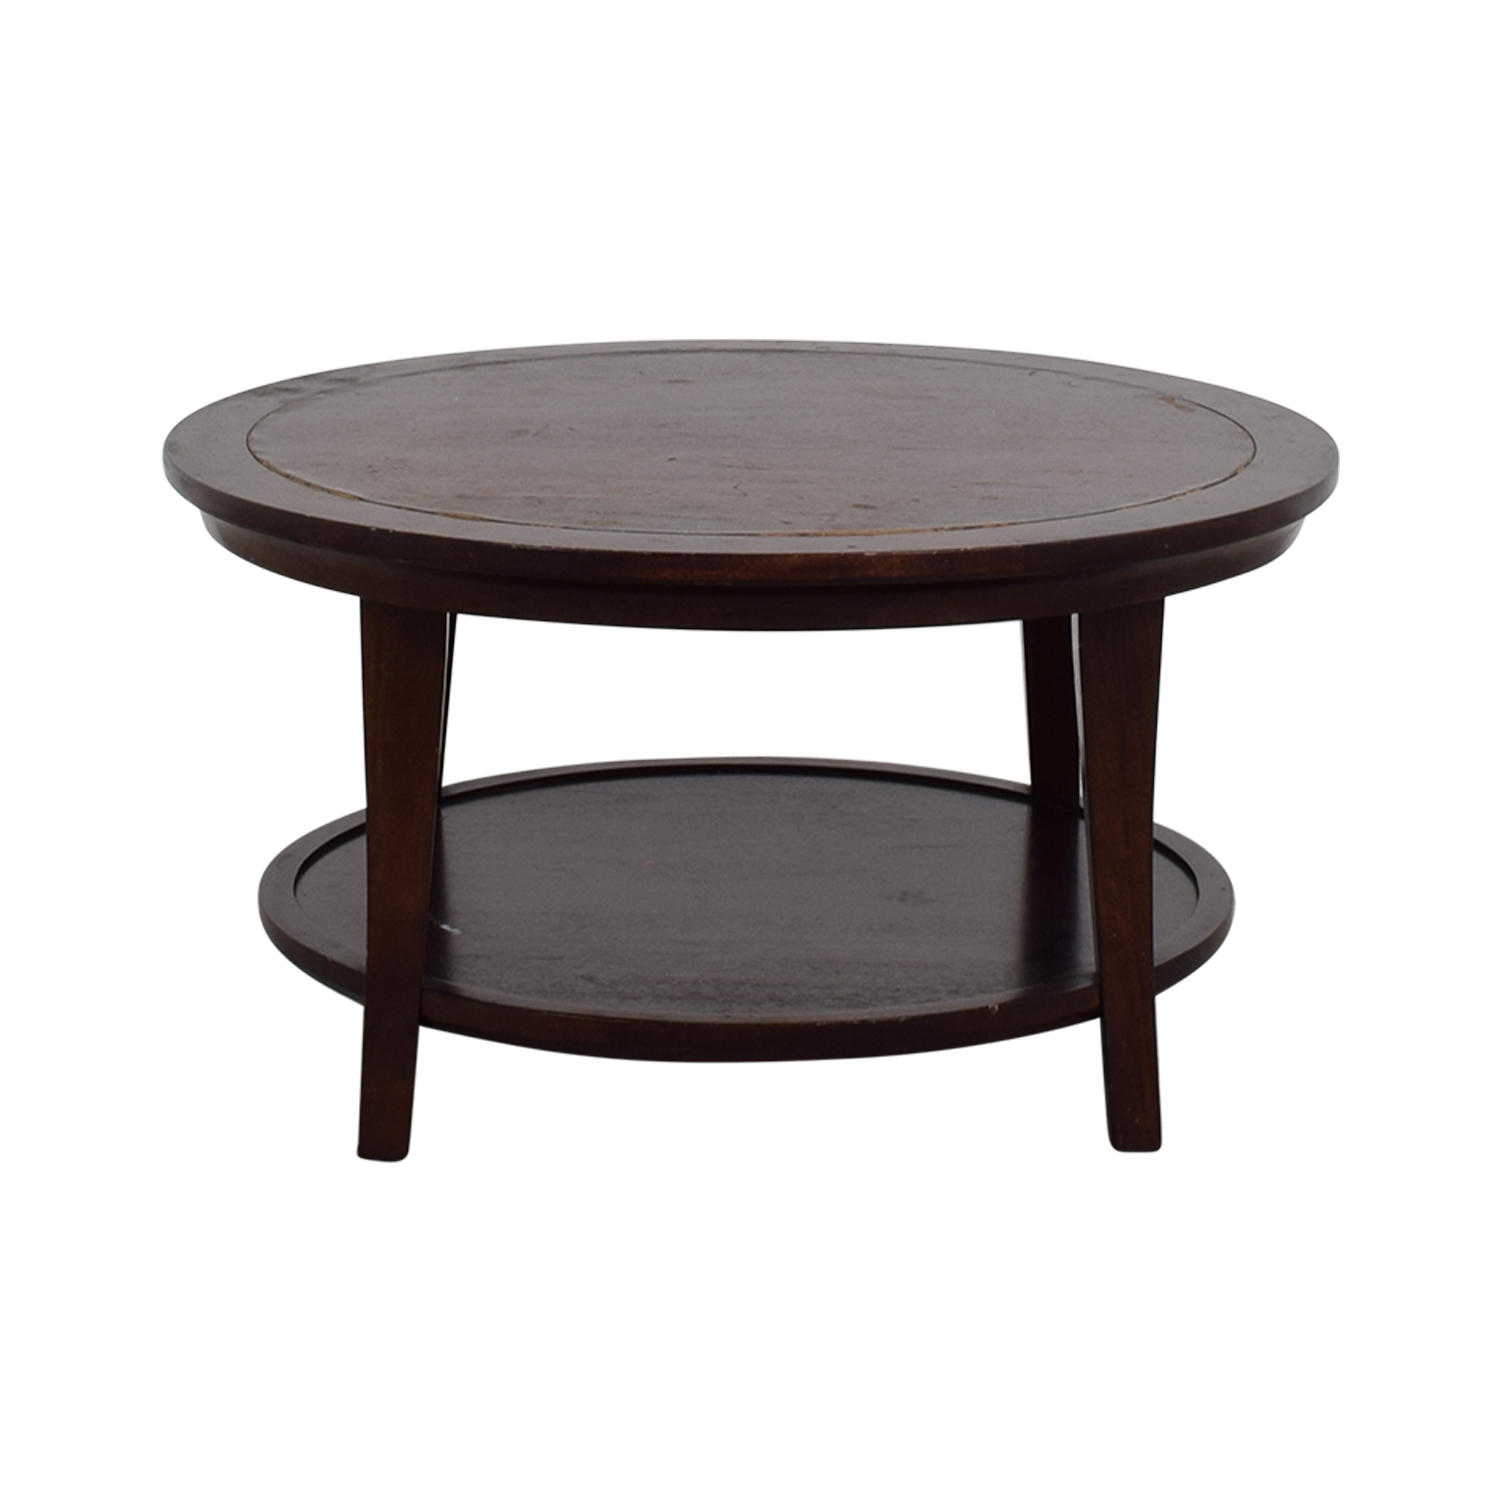 Images Of Round Coffee Tables Shop Round Coffe Table Used Furniture On Sale